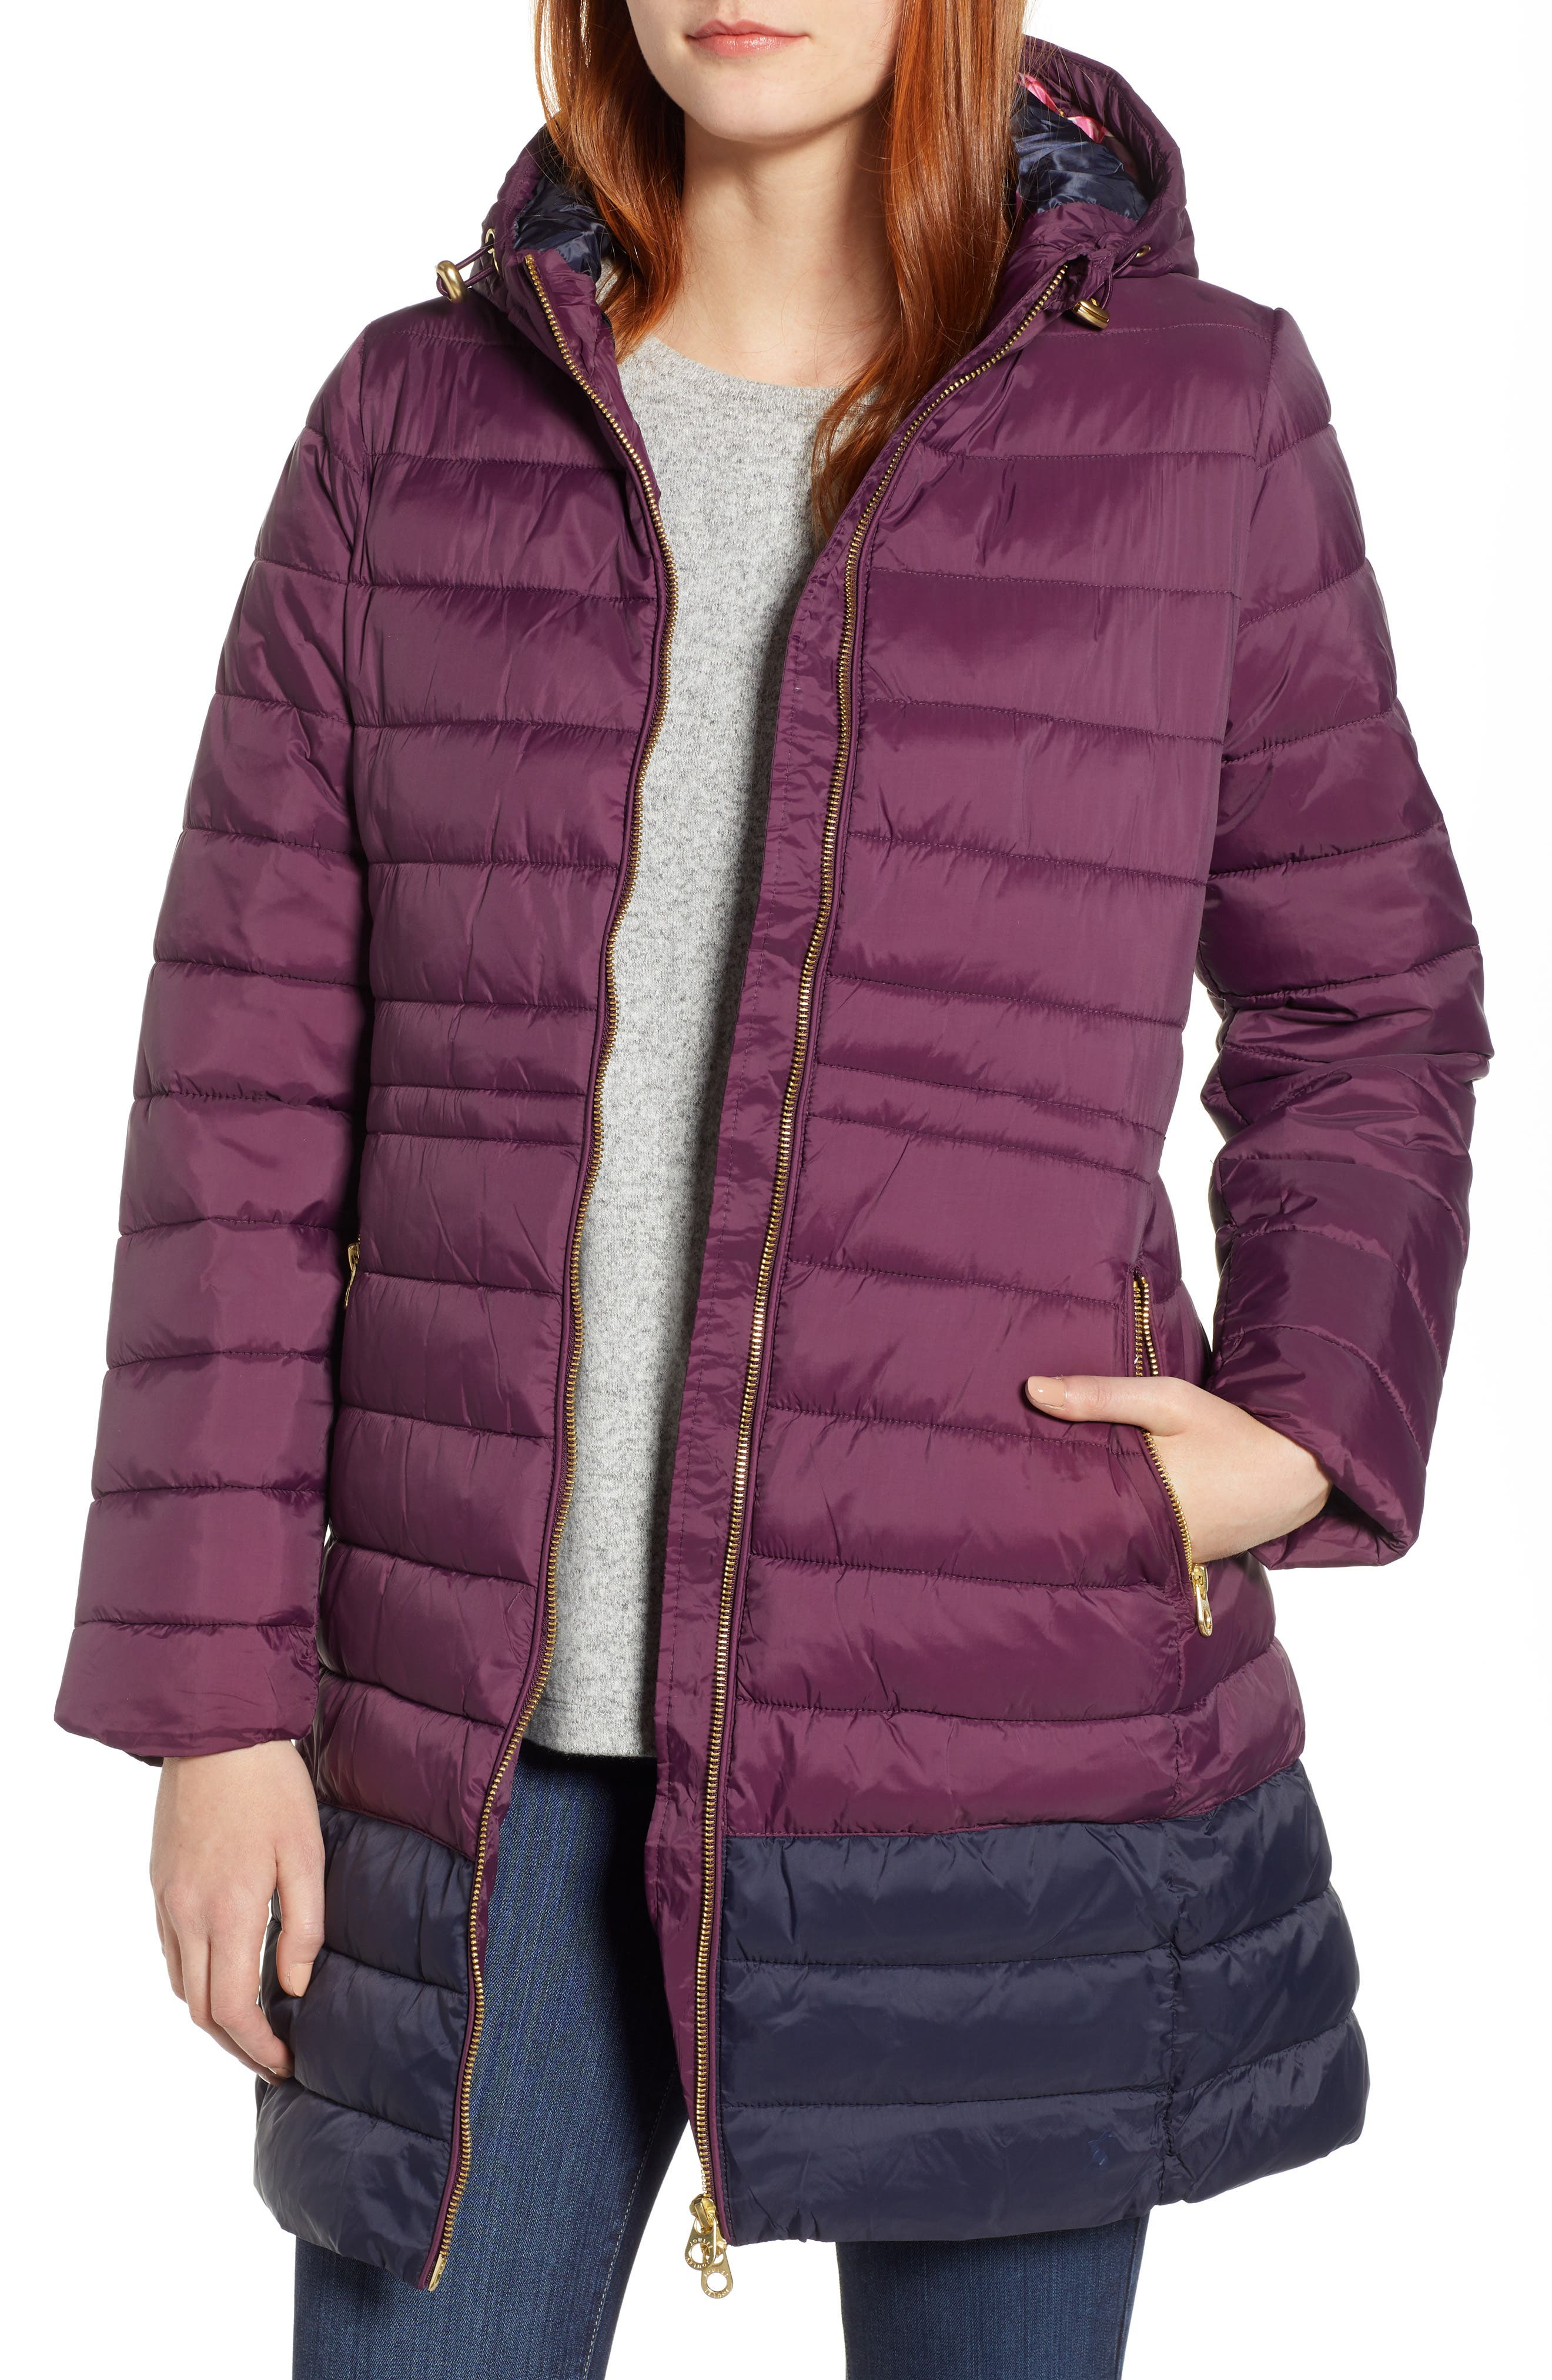 JOULES Heathcote Two-Tone Puffer Jacket, Main, color, BURGUNDY